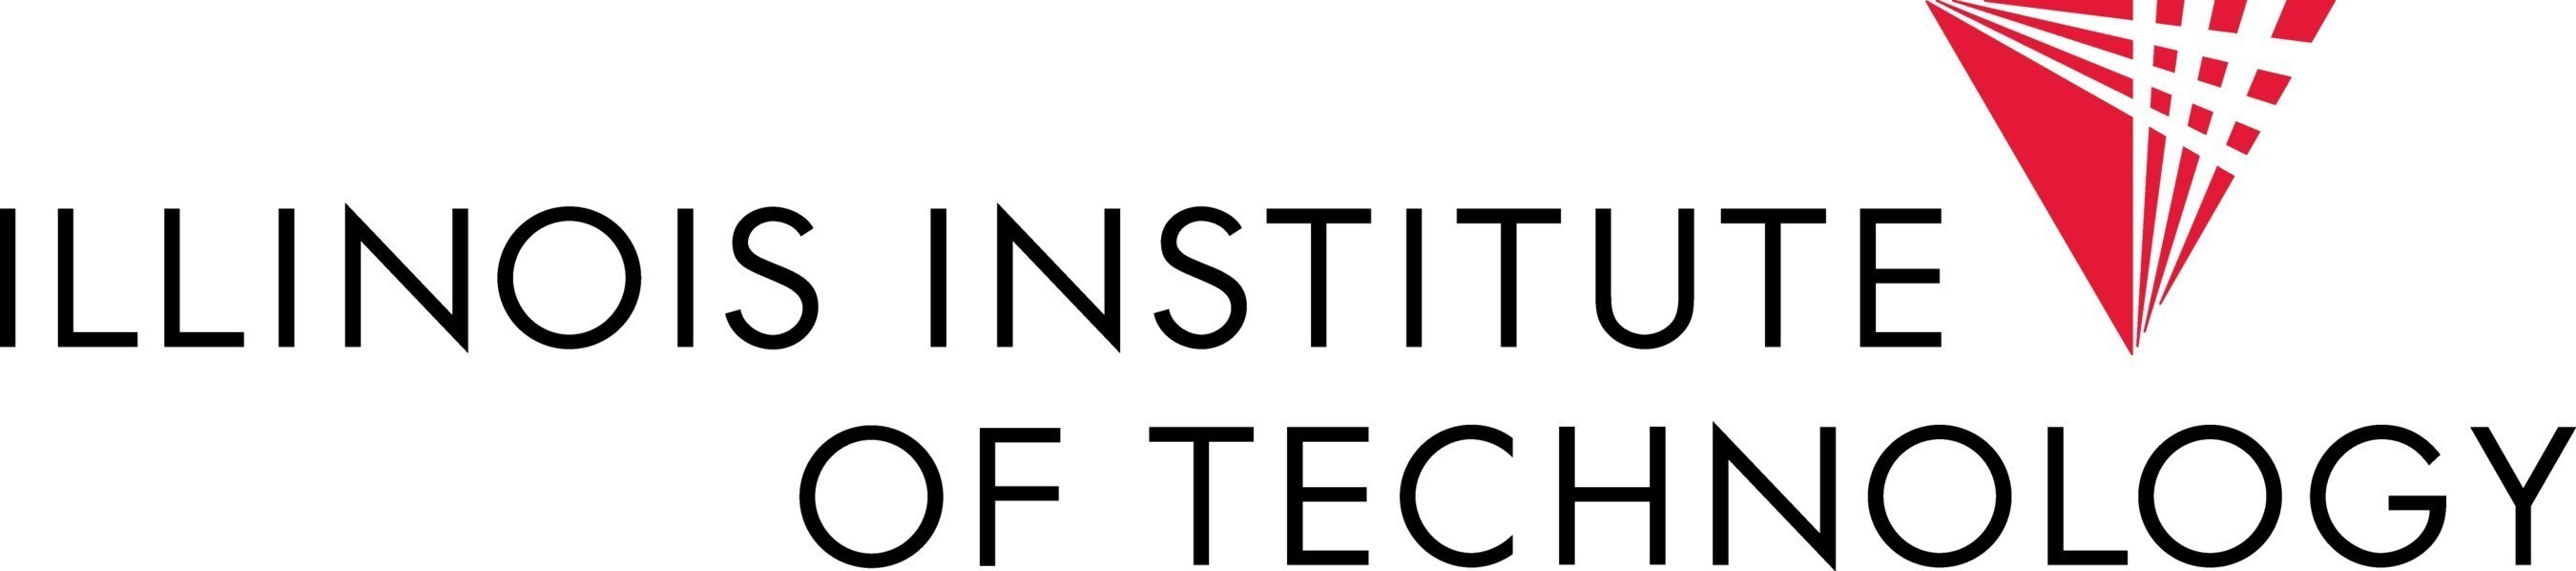 Illinois Institute of Technology Announces Three Finalists for $1 Million-Plus Nayar Prize II